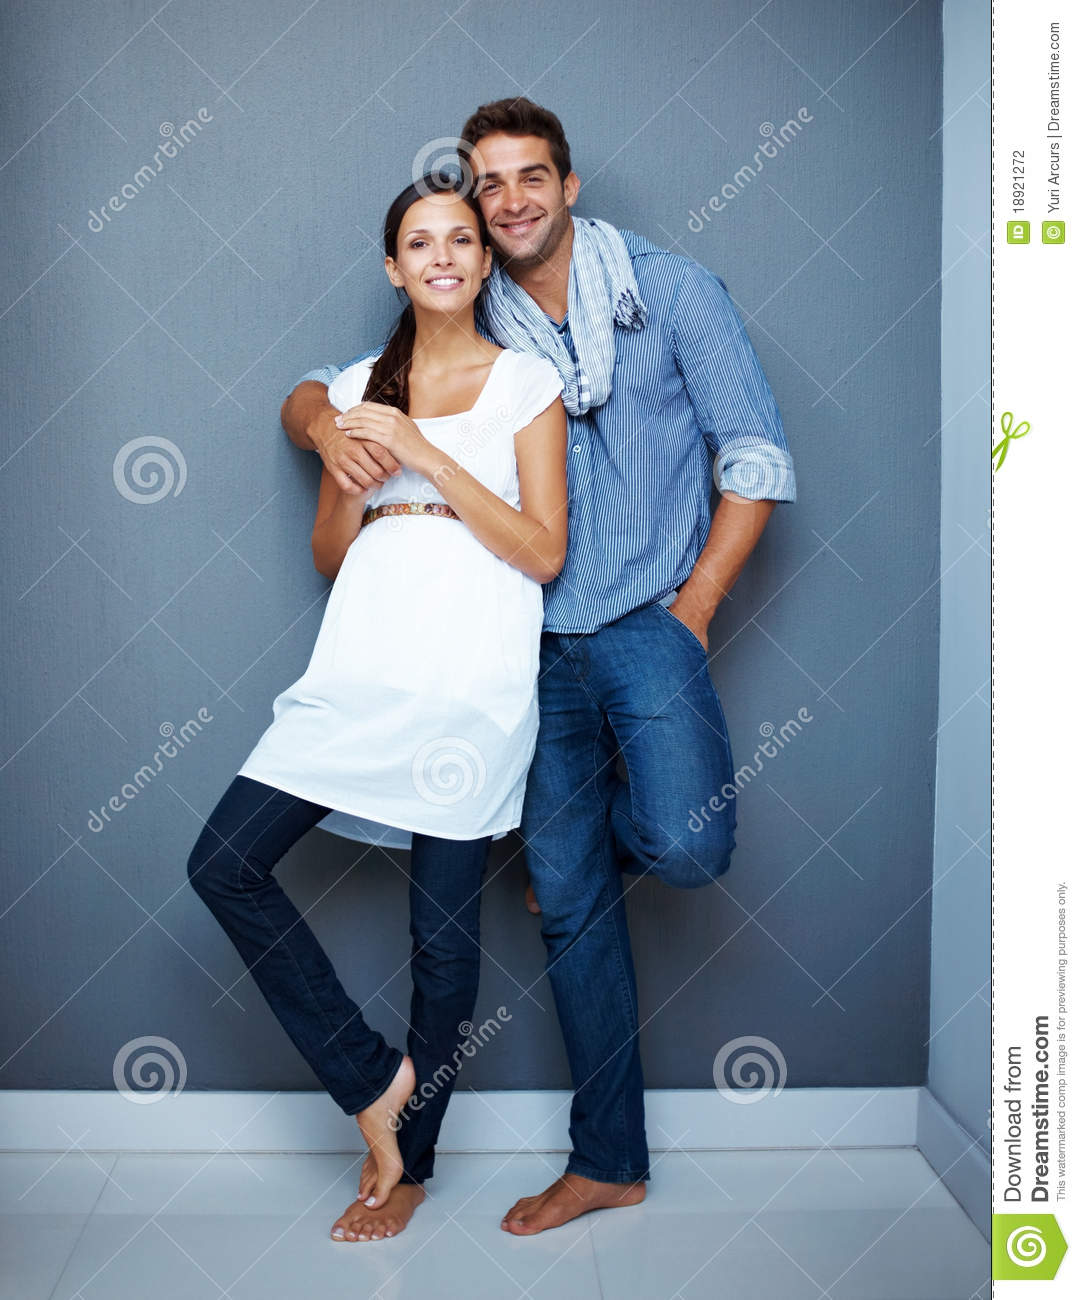 Happy Young Couple Standing Together Stock Photo